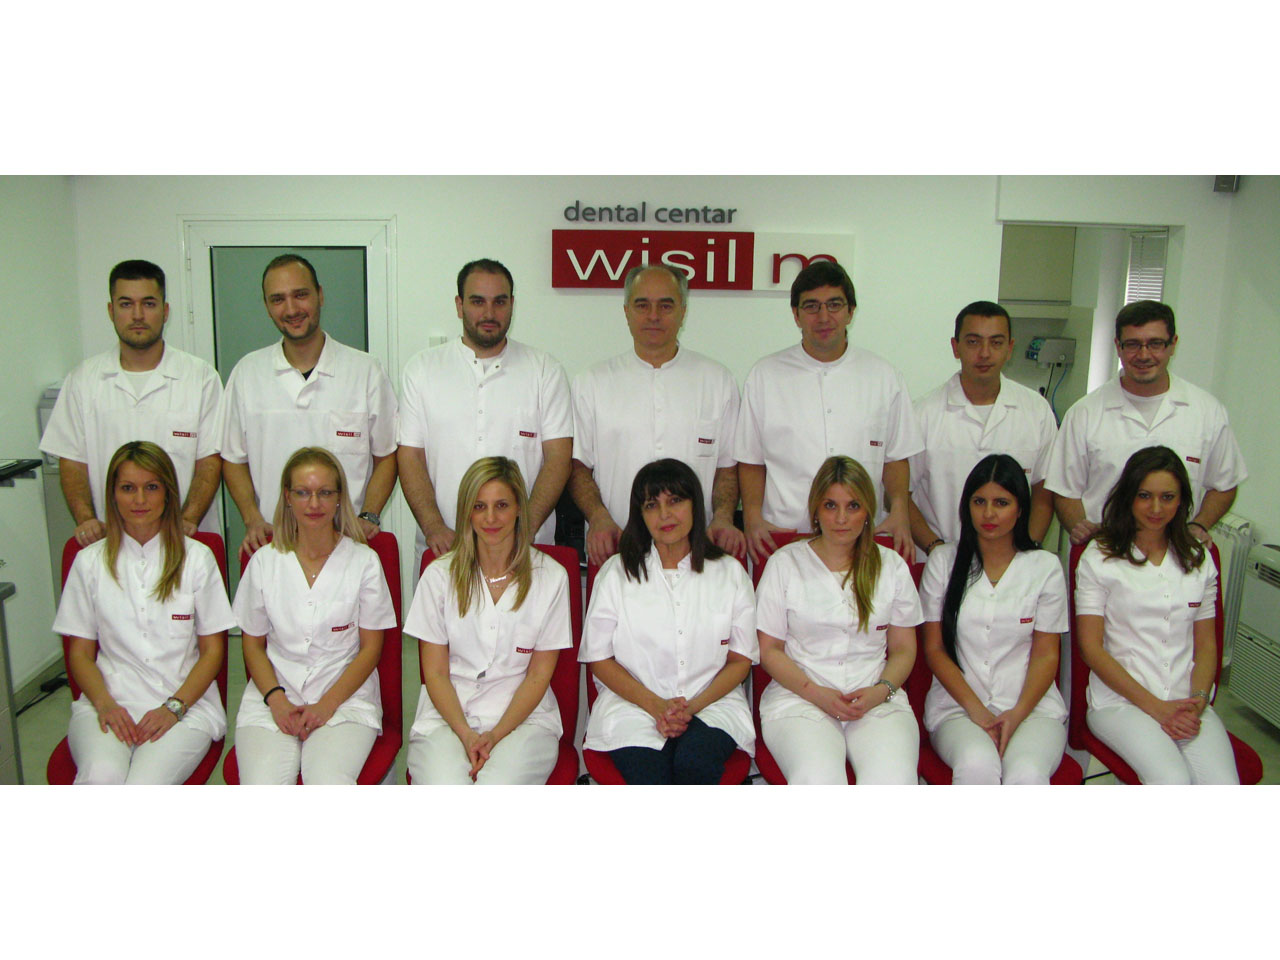 DENTAL CENTER - WISIL M Dental tehnician labotories Beograd